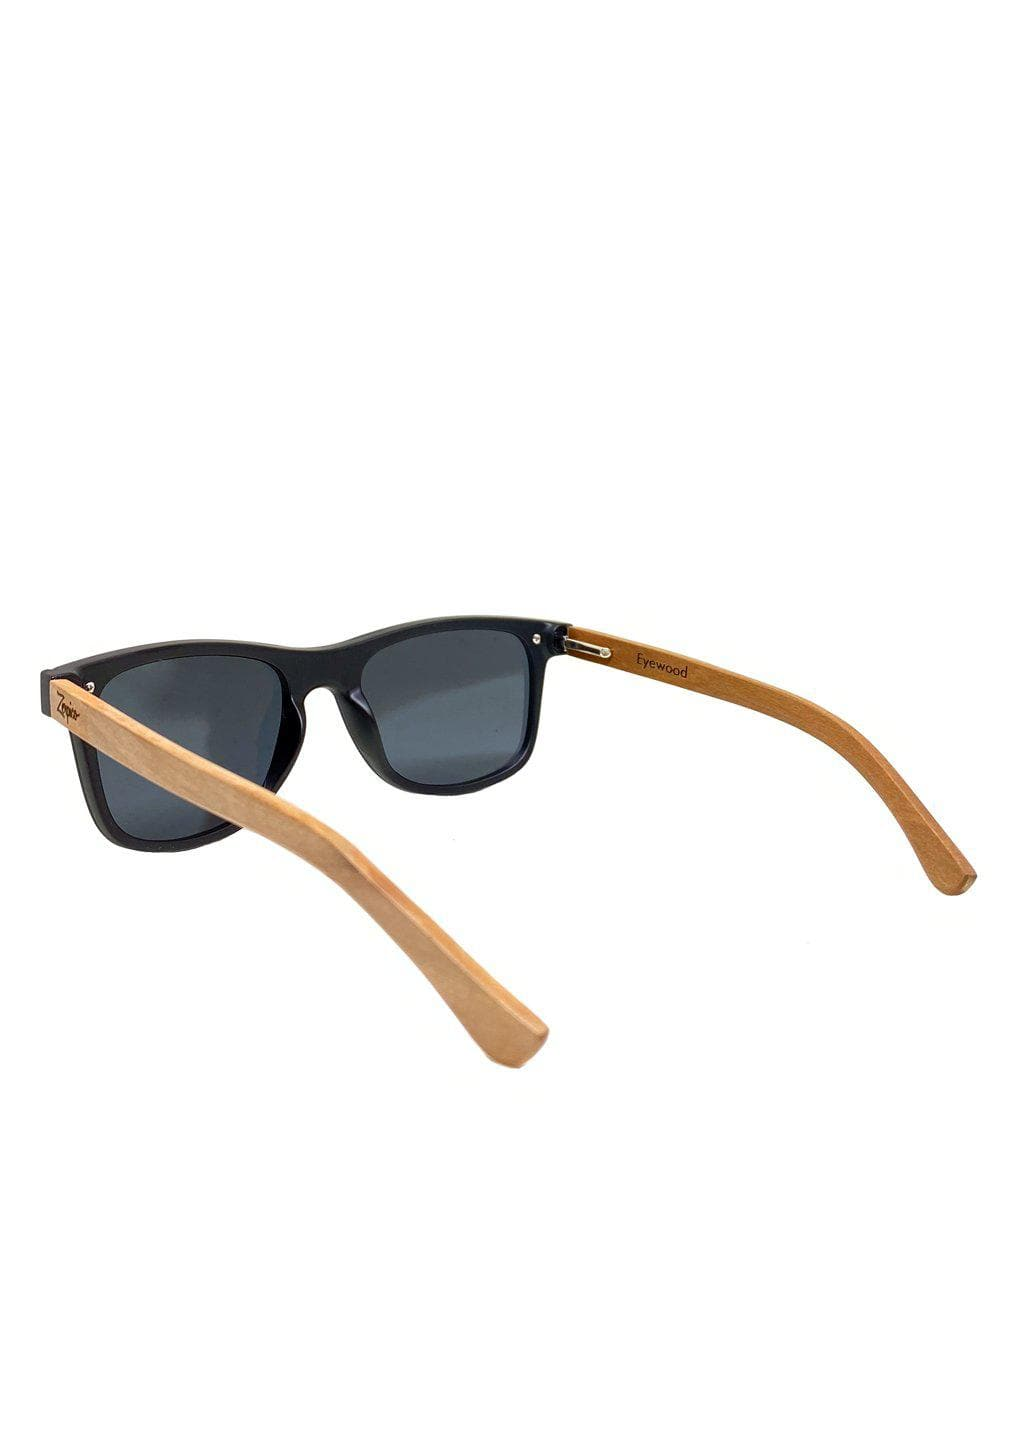 Eyewood tomorrow is our modern cool take on classic models. This is Taurus with black lenses. Nice wooden sunglasses. From back.